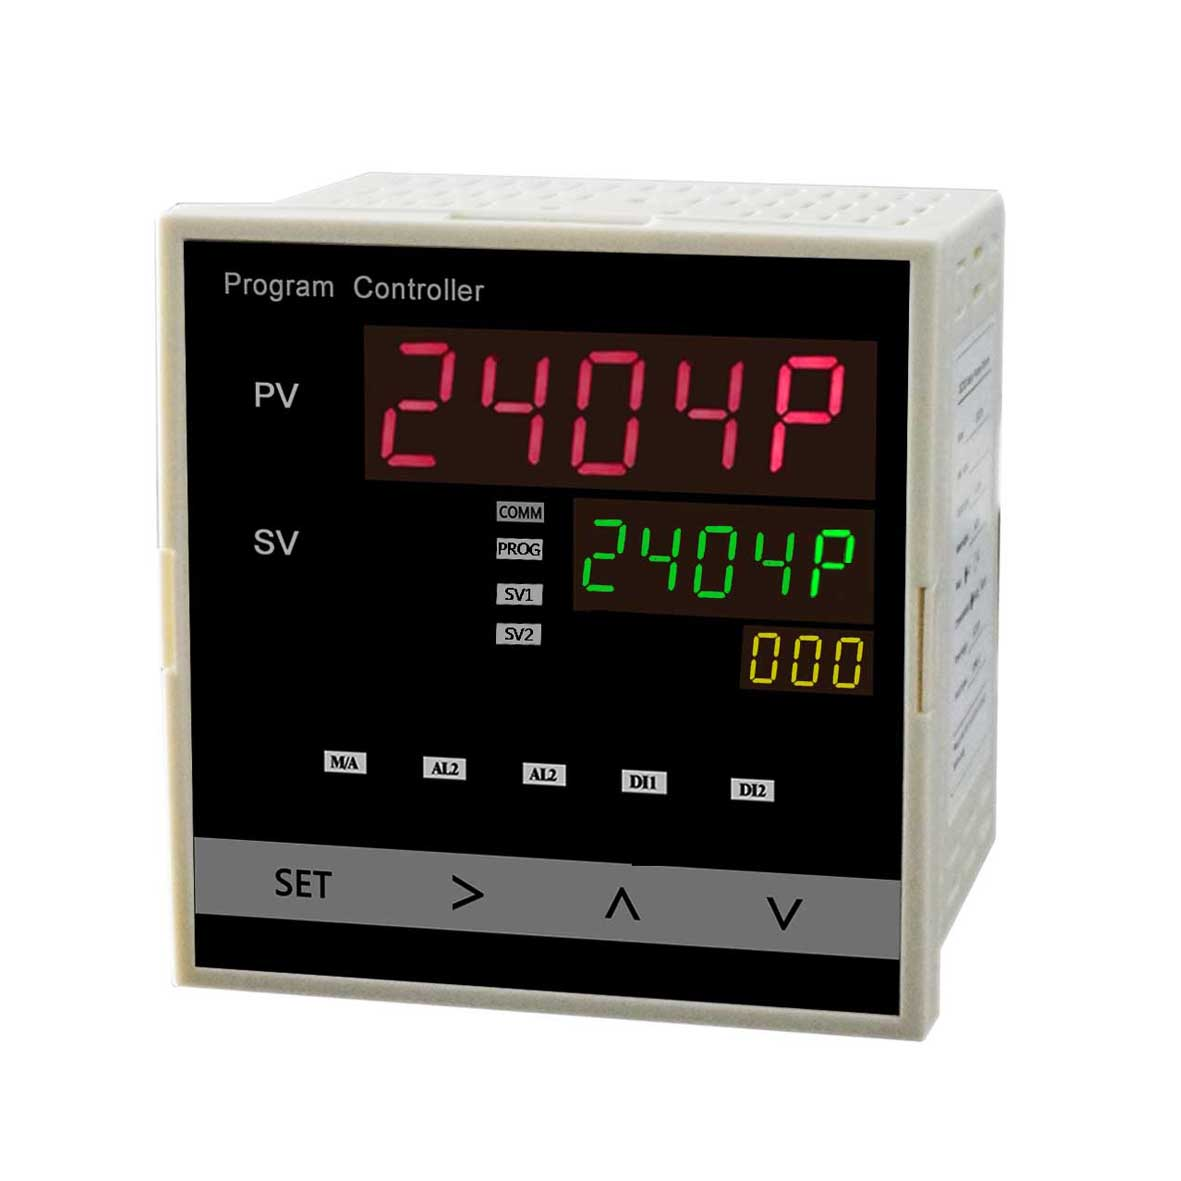 DK2404 double input 9 sets of process curve 24 section curve PID temperature controller